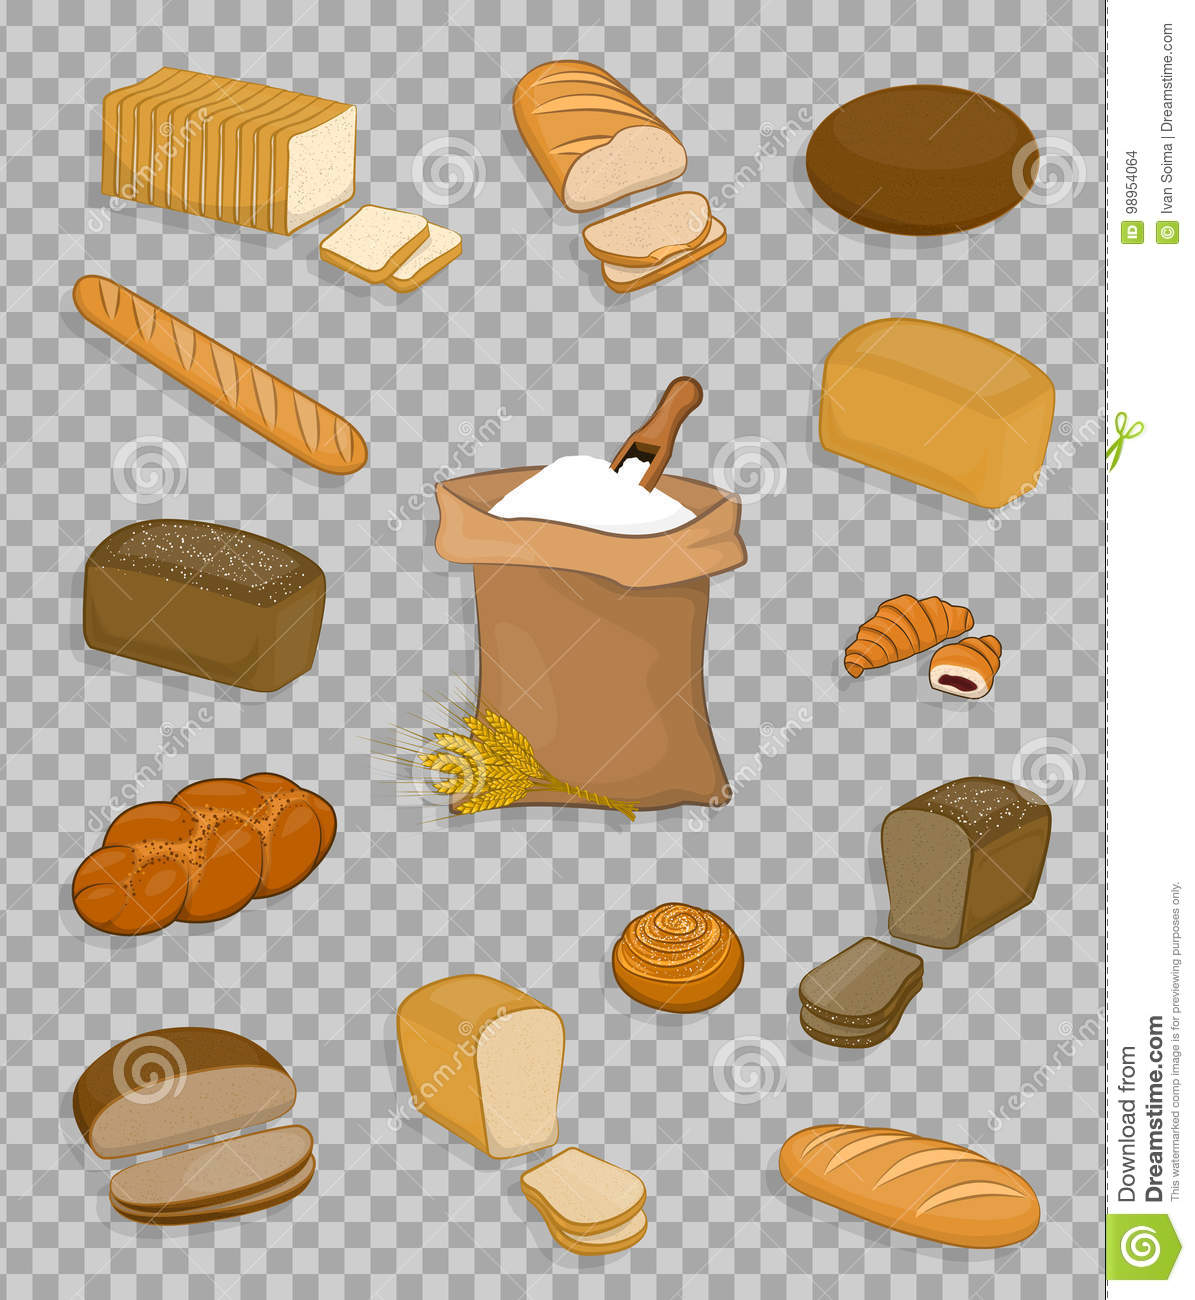 set of bakery and confectionery isolated on a transparent background stock vector illustration of kitchen drawn 98954064 https www dreamstime com stock illustration set bakery confectionery isolated transparent background bag flour shovel ears wheat barley rye image98954064